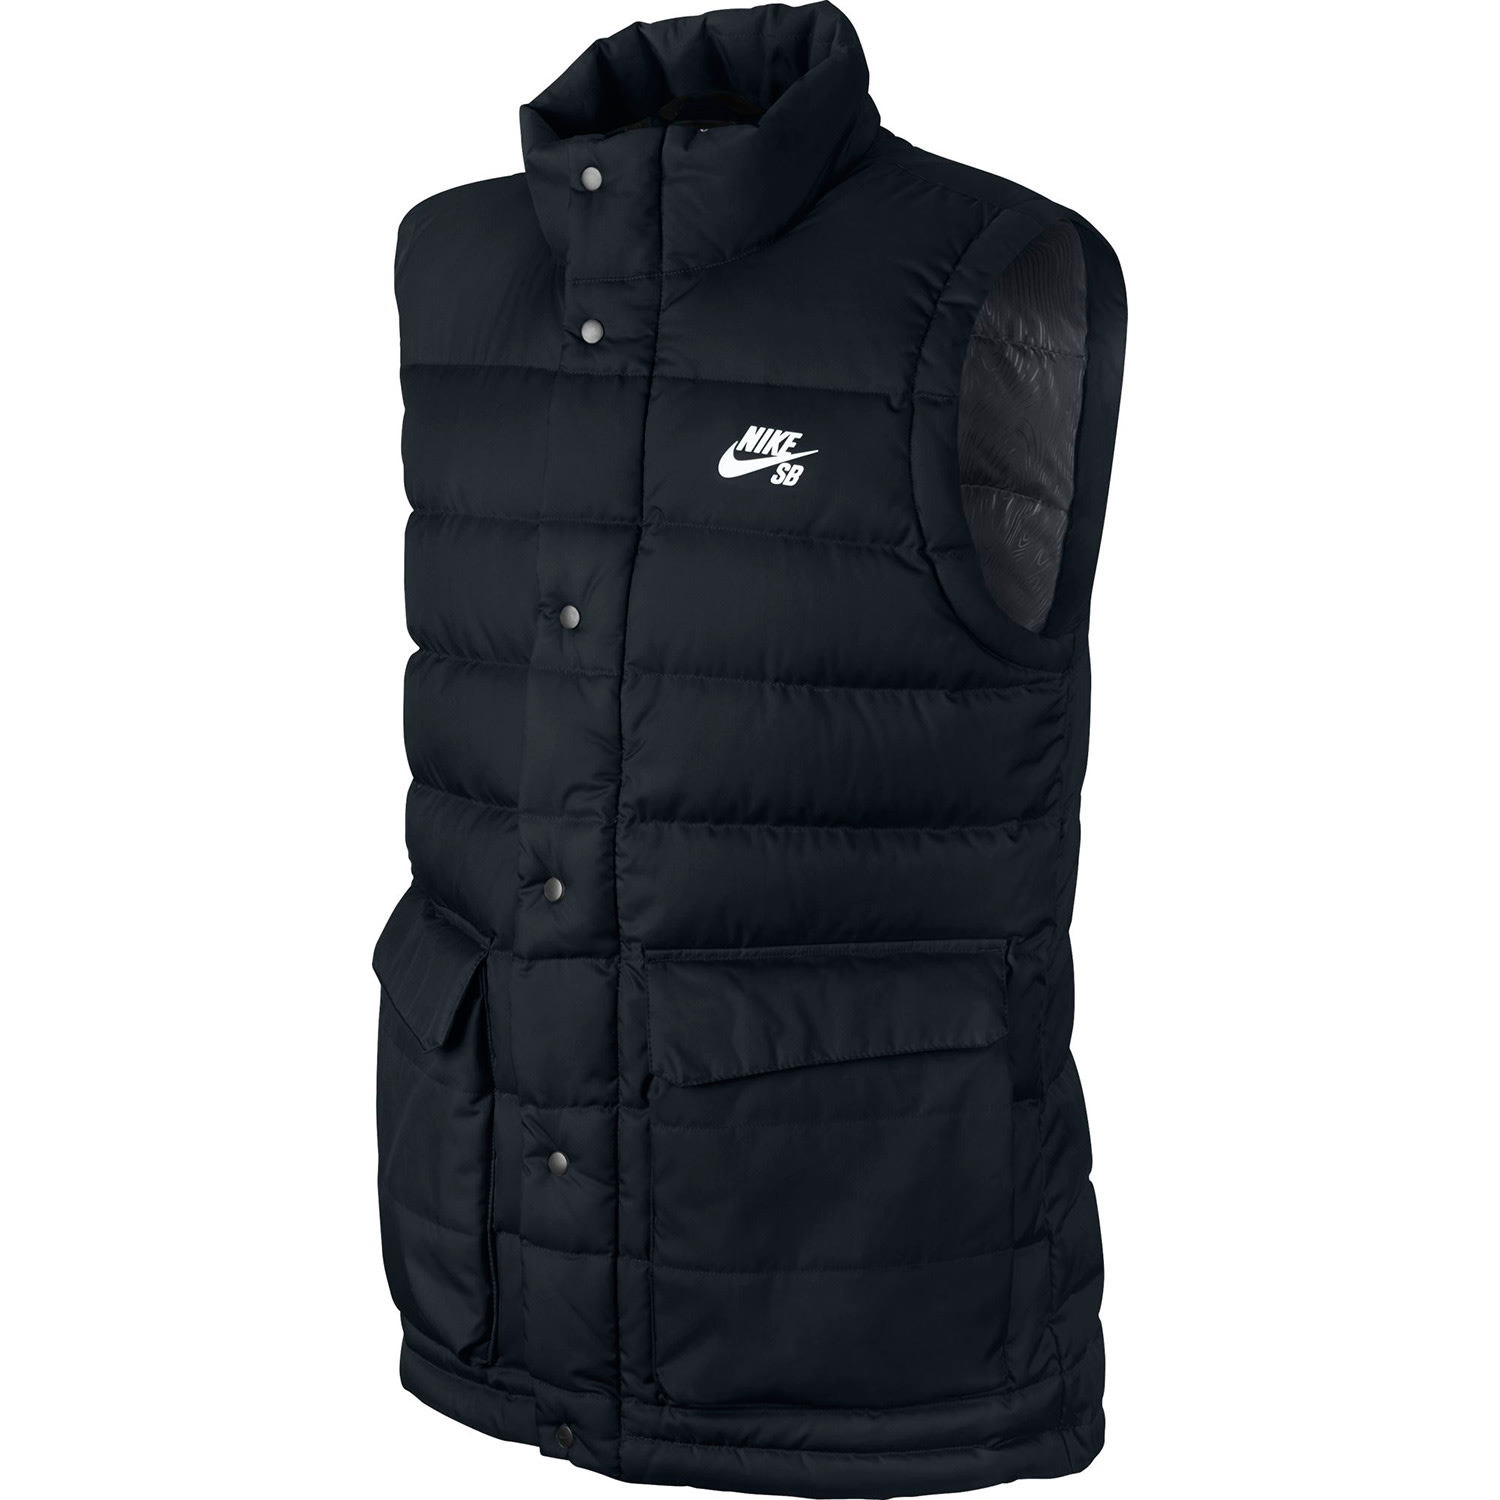 On Sale Nike SB 550 Fill Down Vest up to 40% off